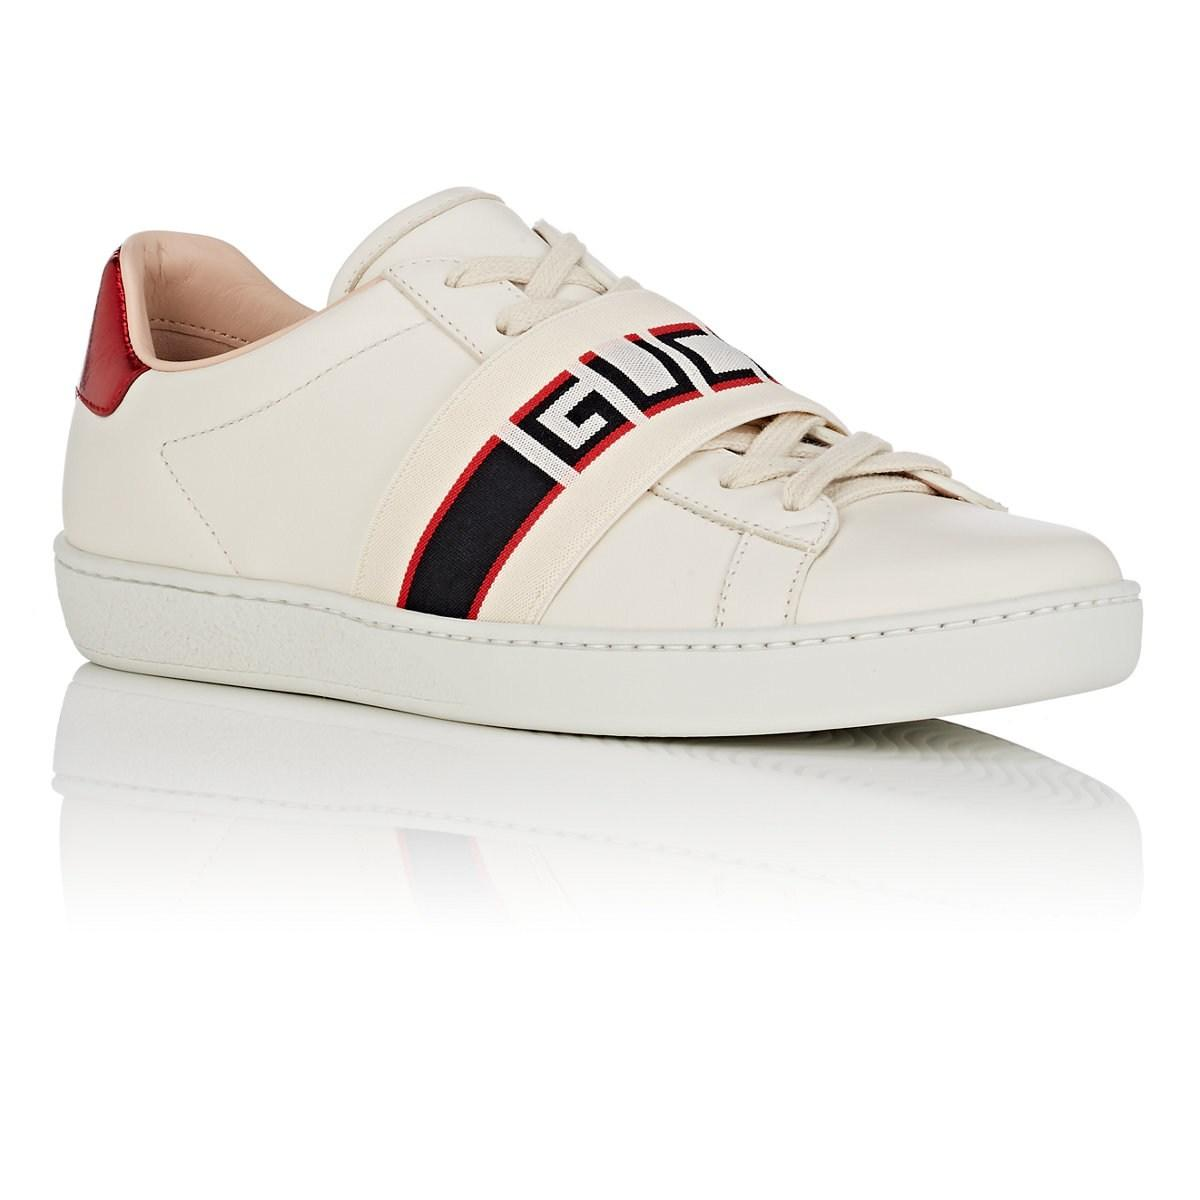 9aa893d02f7 Gucci - White New Ace Leather Sneakers - Lyst. View fullscreen